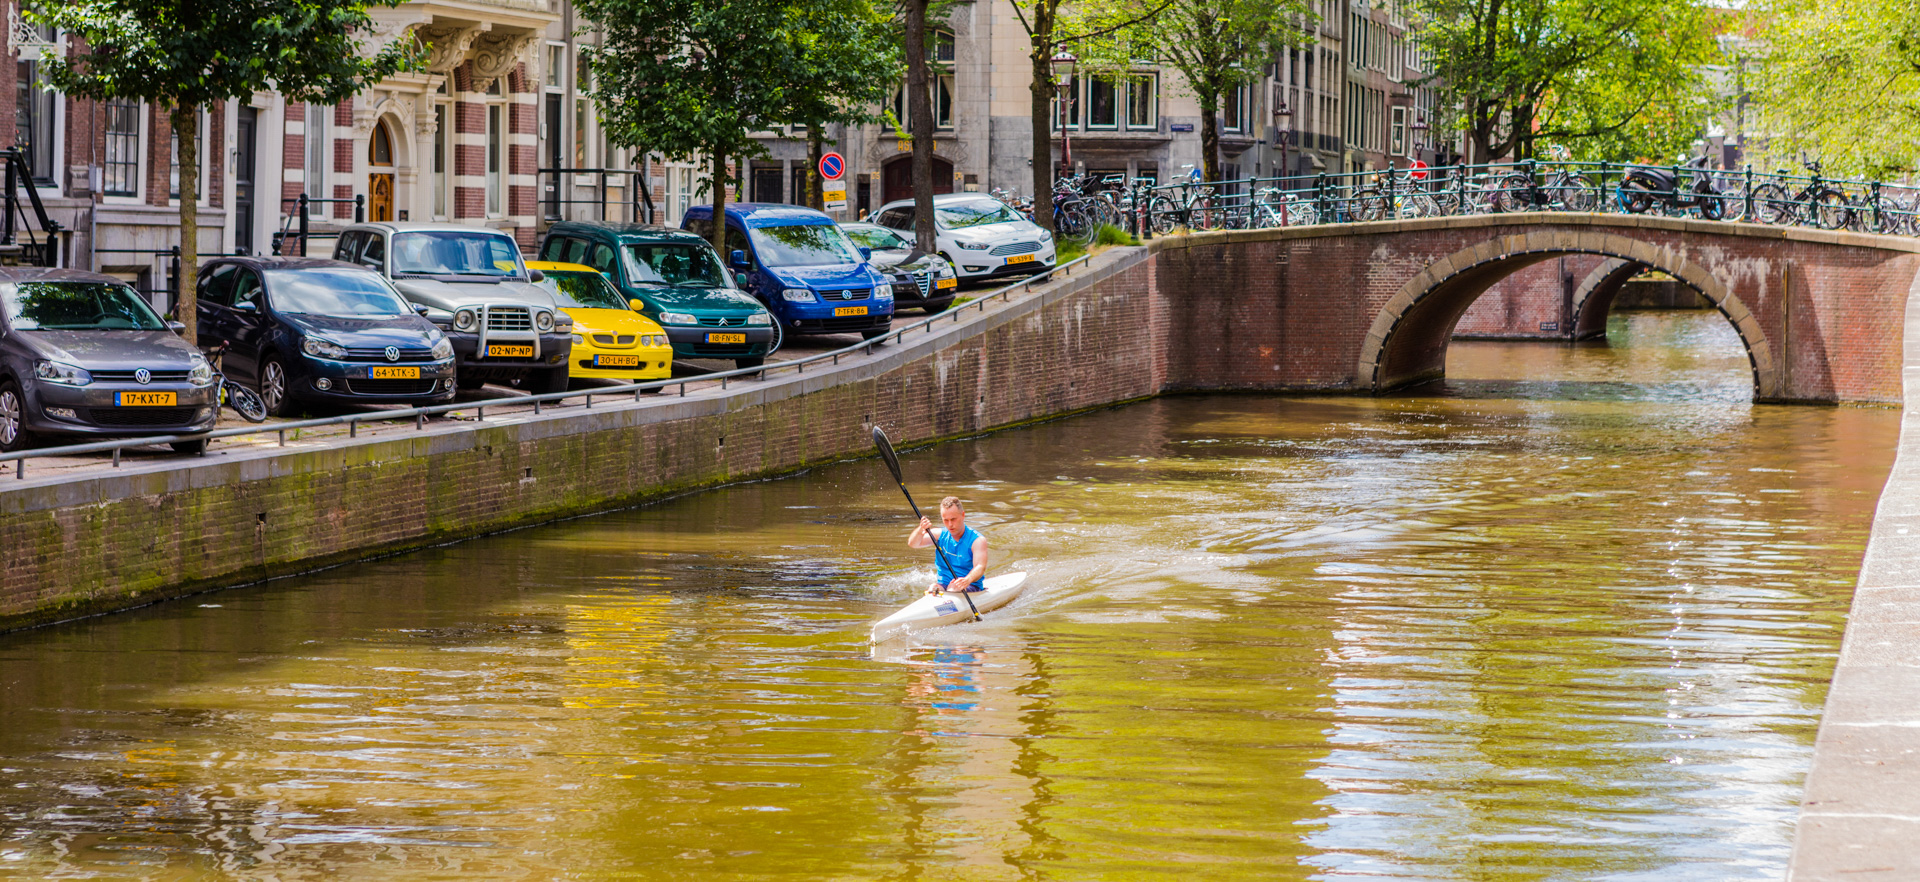 A kayaker on a canal in Amsterdam